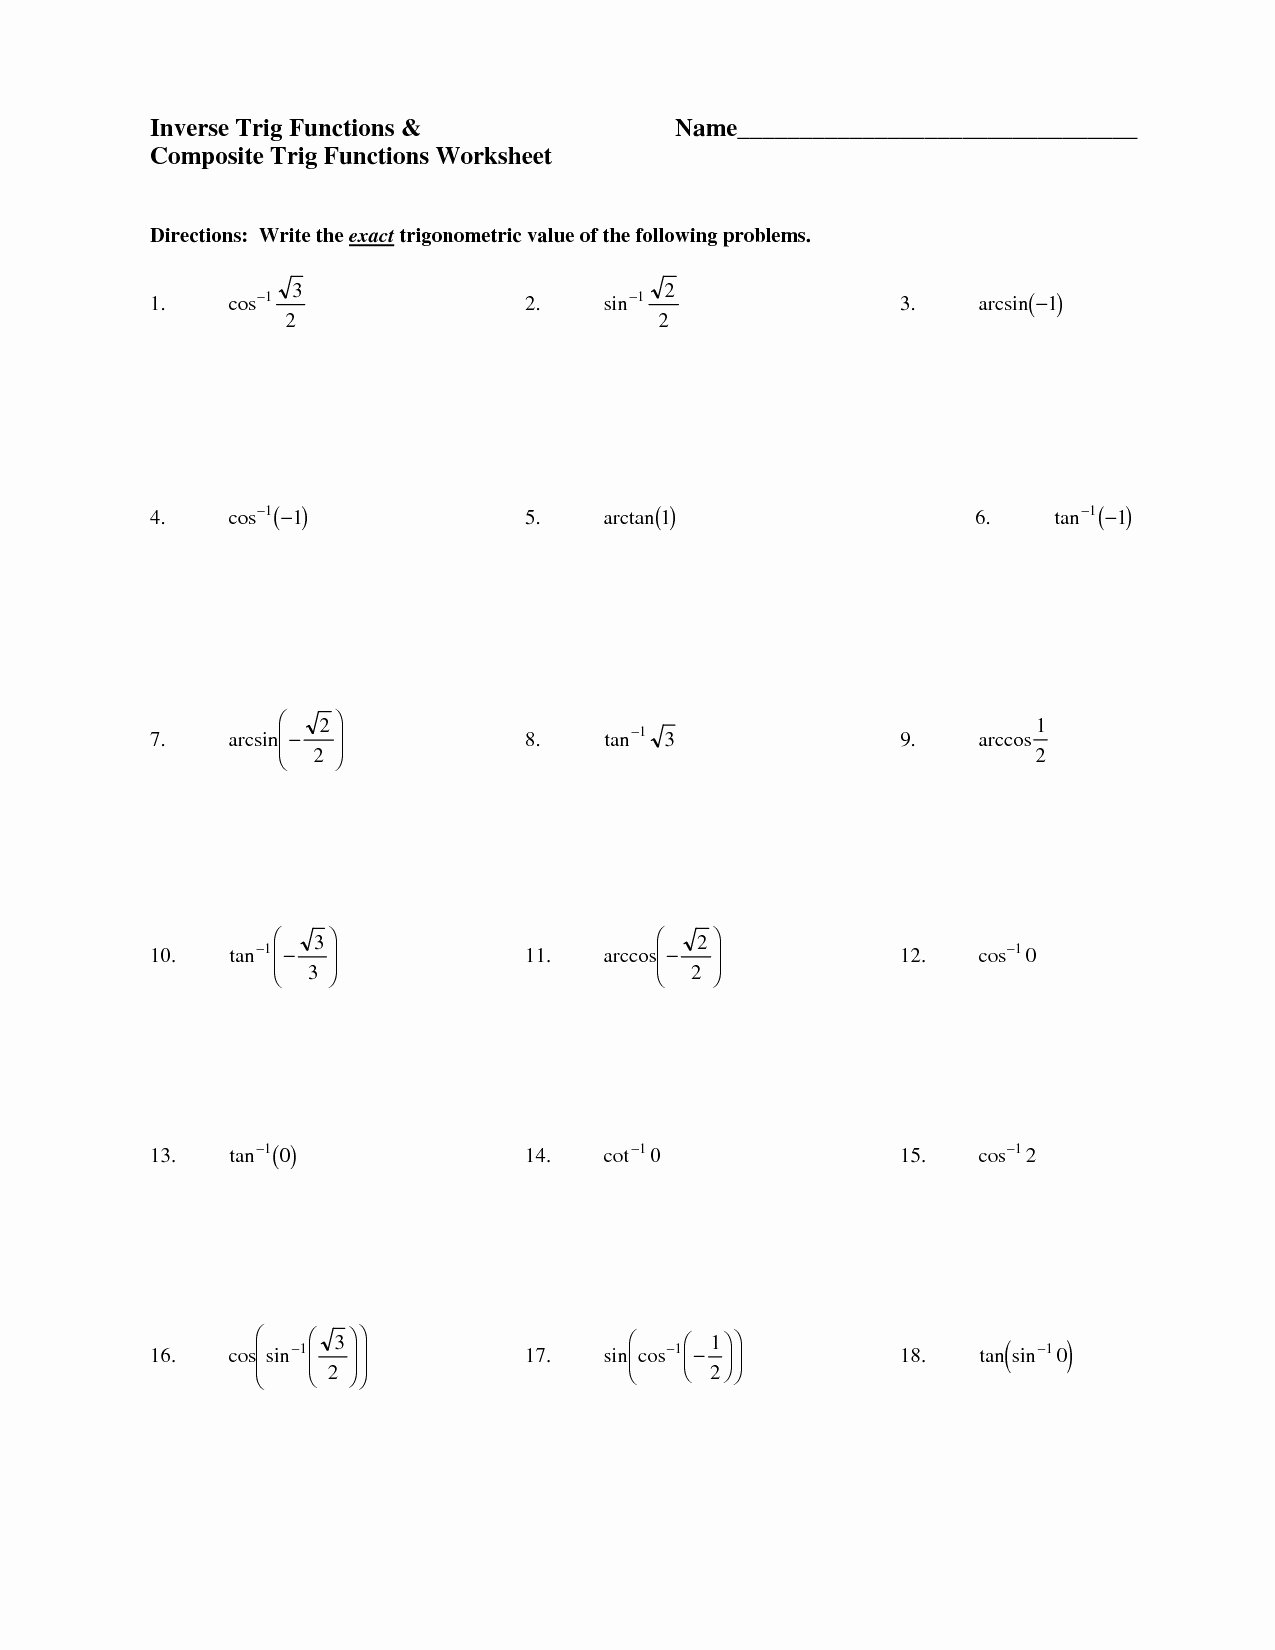 Composite Function Worksheet Answer Key Printable Position and Inverse Function Worksheet